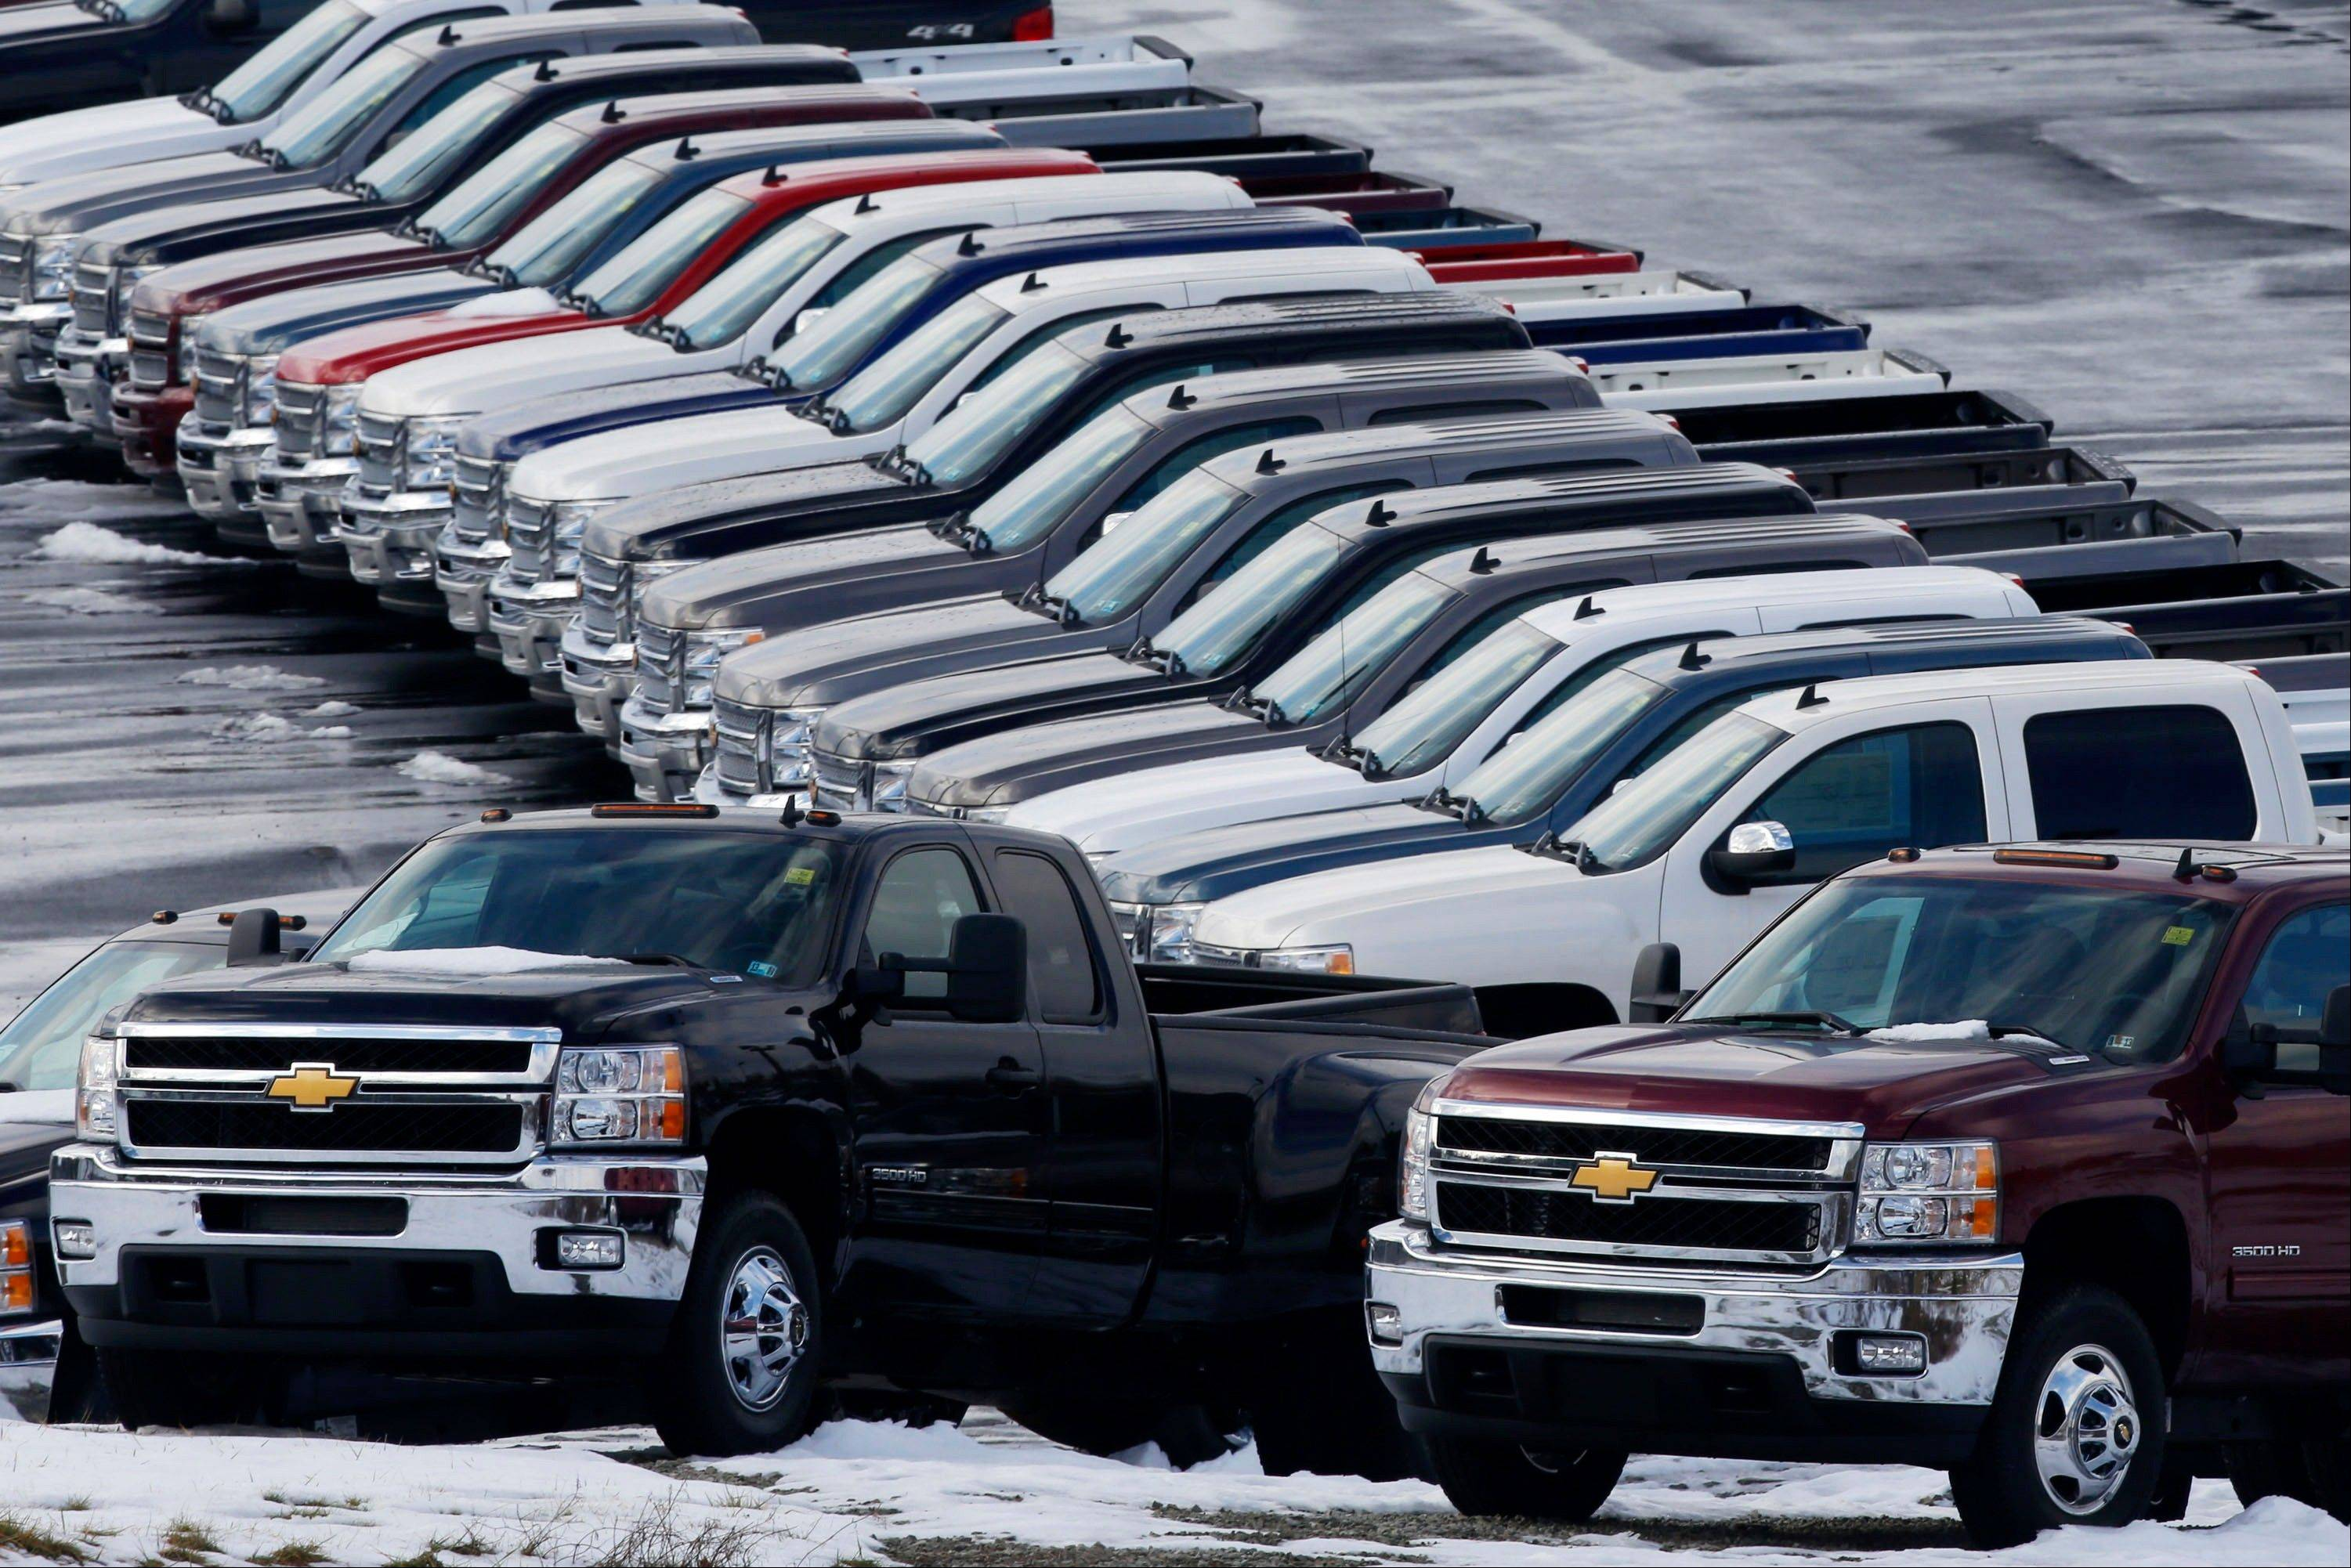 Chevy trucks line the lot of a dealer in Murrysville, Pa. Ford, Chrysler and General Motors all reported double-digit gains for January as last year's momentum in U.S. auto sales continued into 2013.